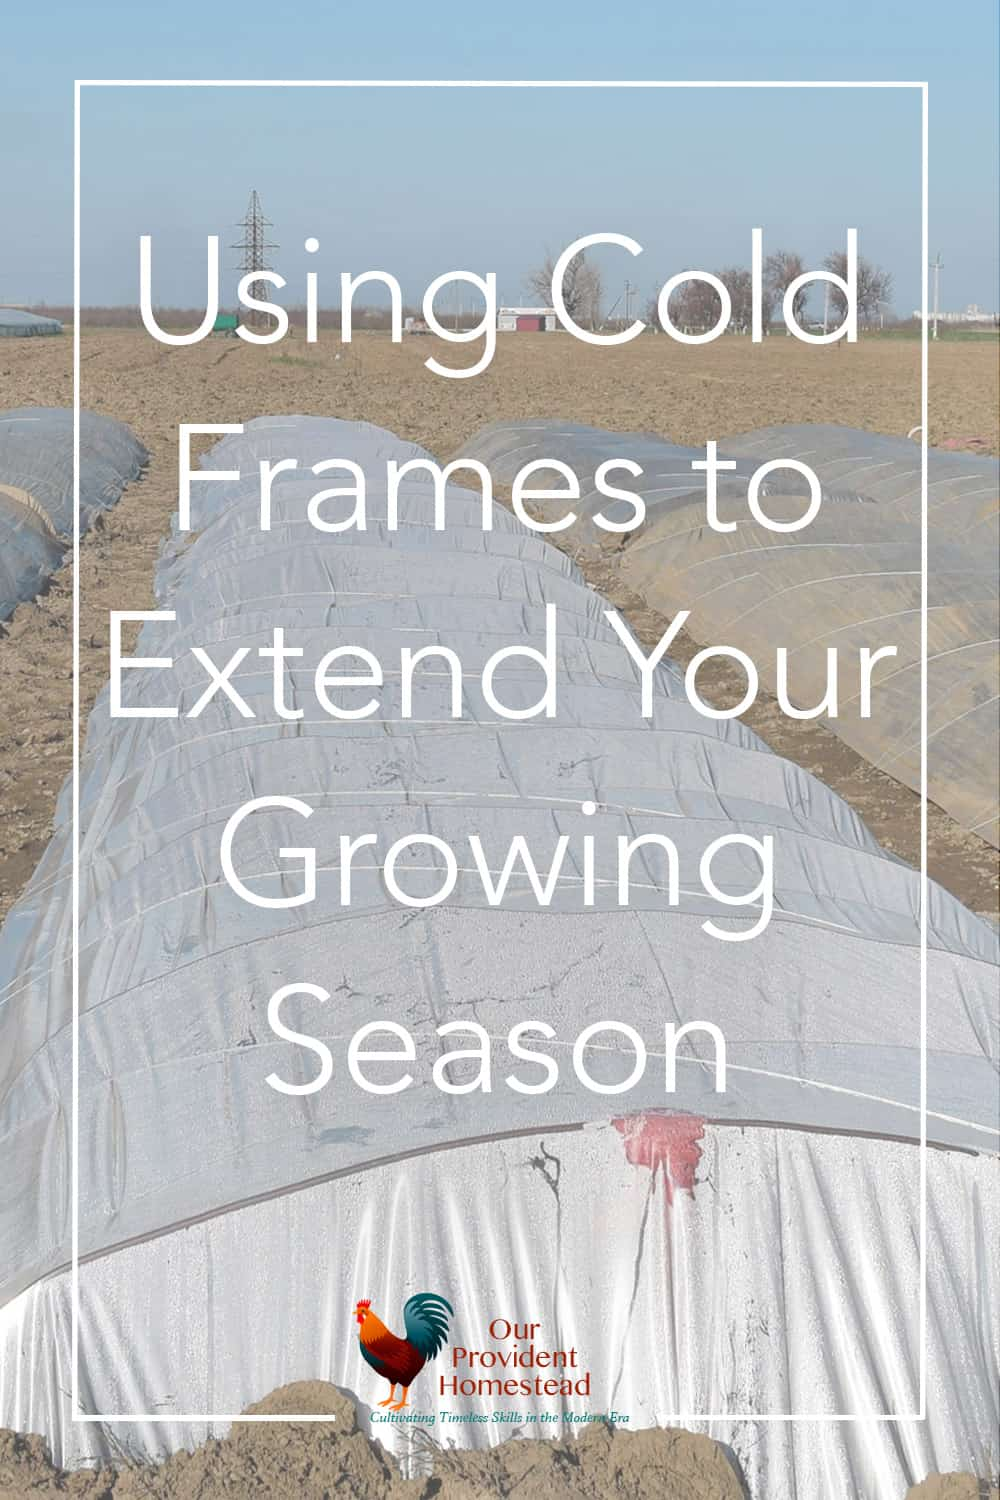 Is the fall too short to grow much where you live? Click here to see how using cold frames can extend your growing season. #gardening #coldframes